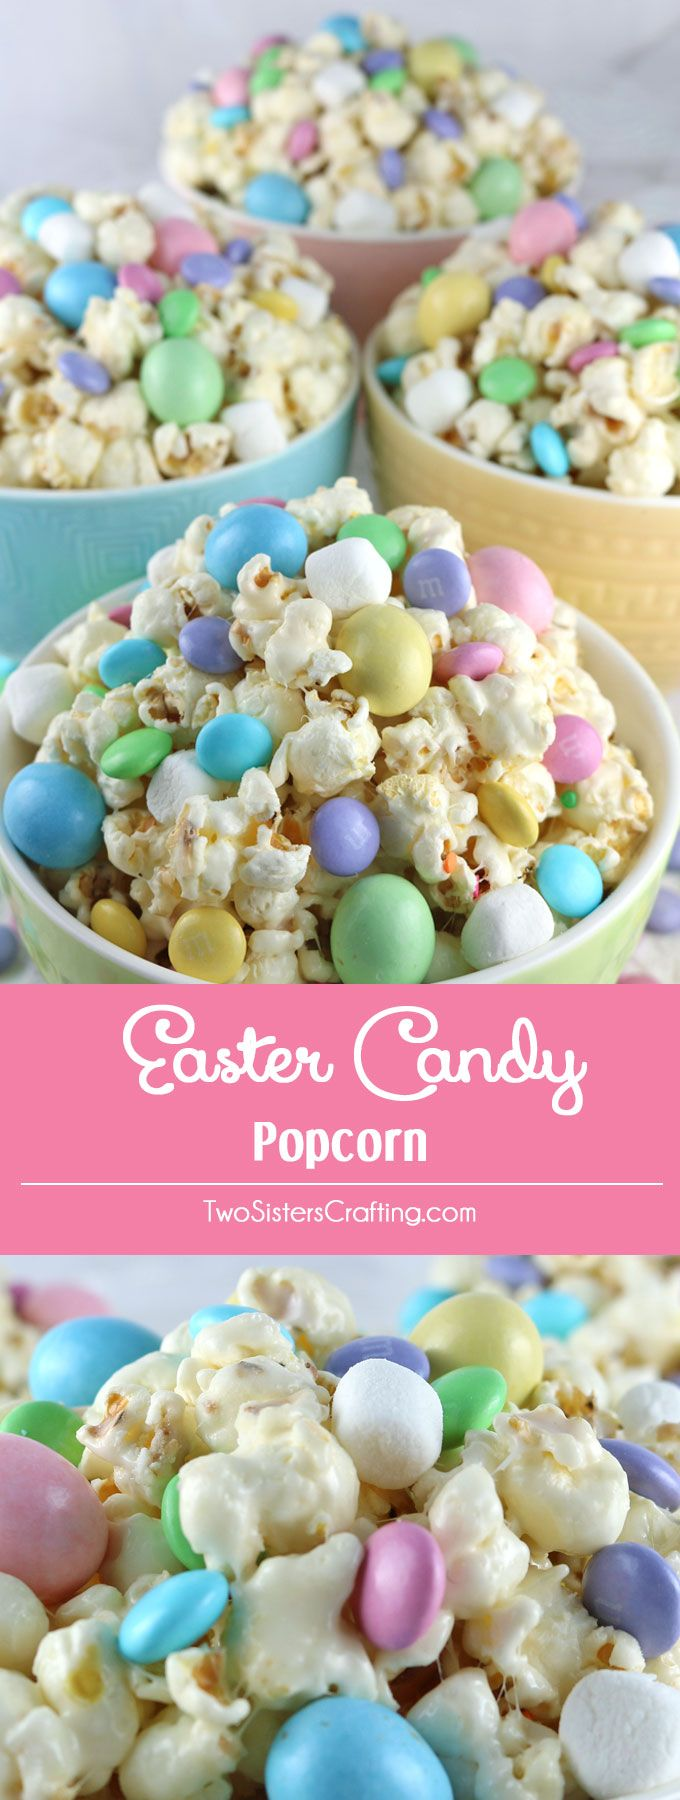 Celebrate with our Easter Candy Popcorn – a fun Easter Dessert that is both sweet and salty and chock full of Easter Candy. This